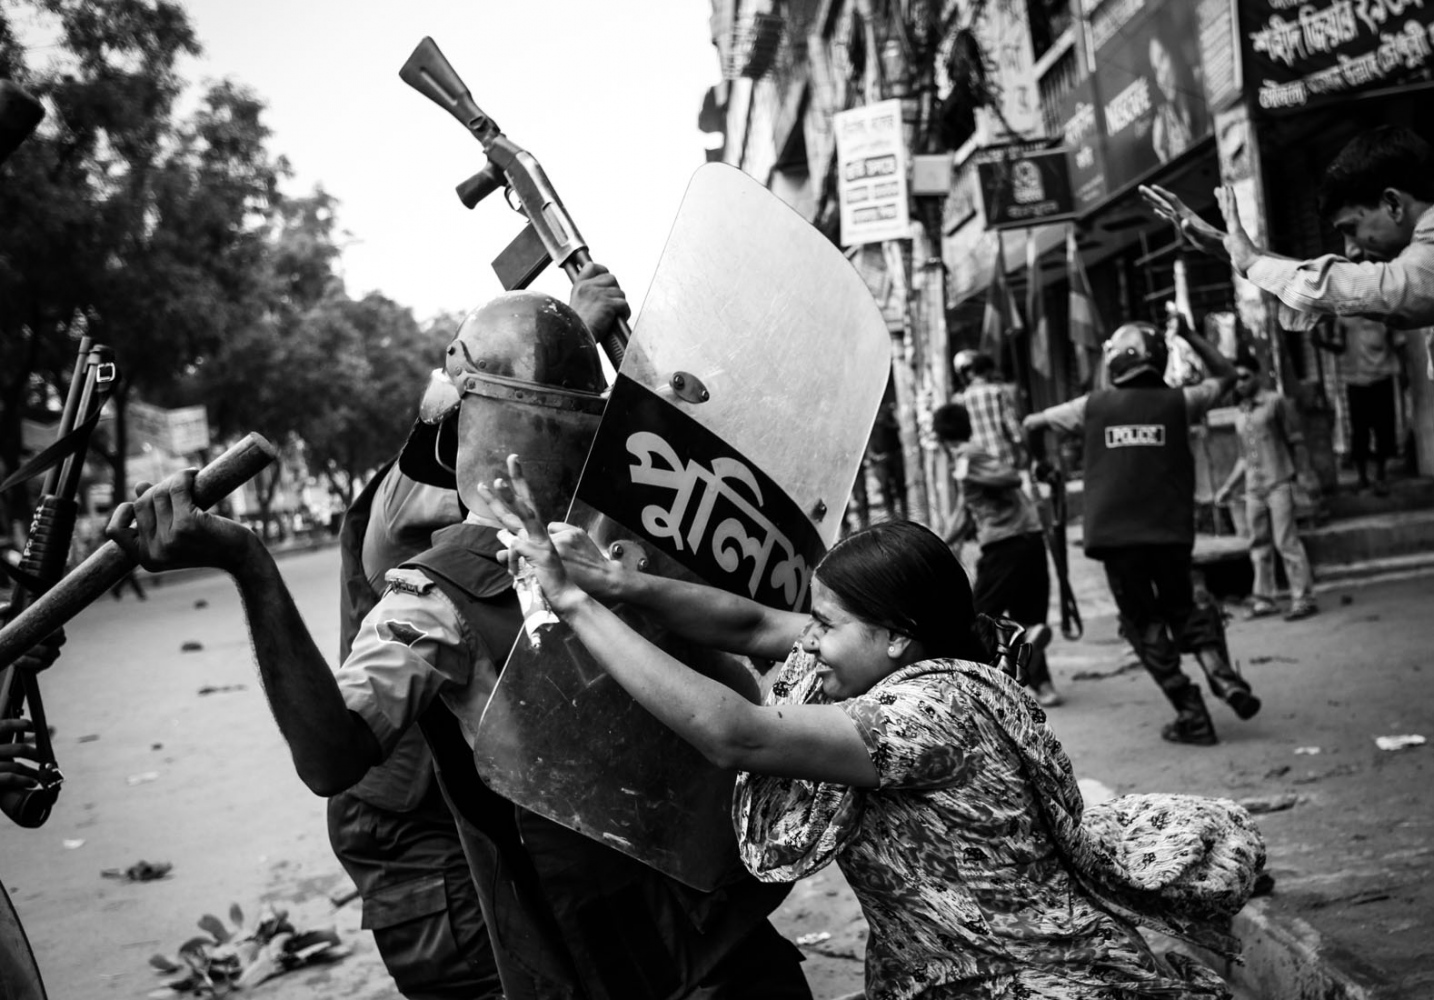 Rahela Akhter, a garment worker, tries to resist beating from the police during a protest in Dhaka. On 30th June, 2010, 80 garment workers were injured when they took to the streets demanding better pay and the police tried to 'contain' them as ordered.